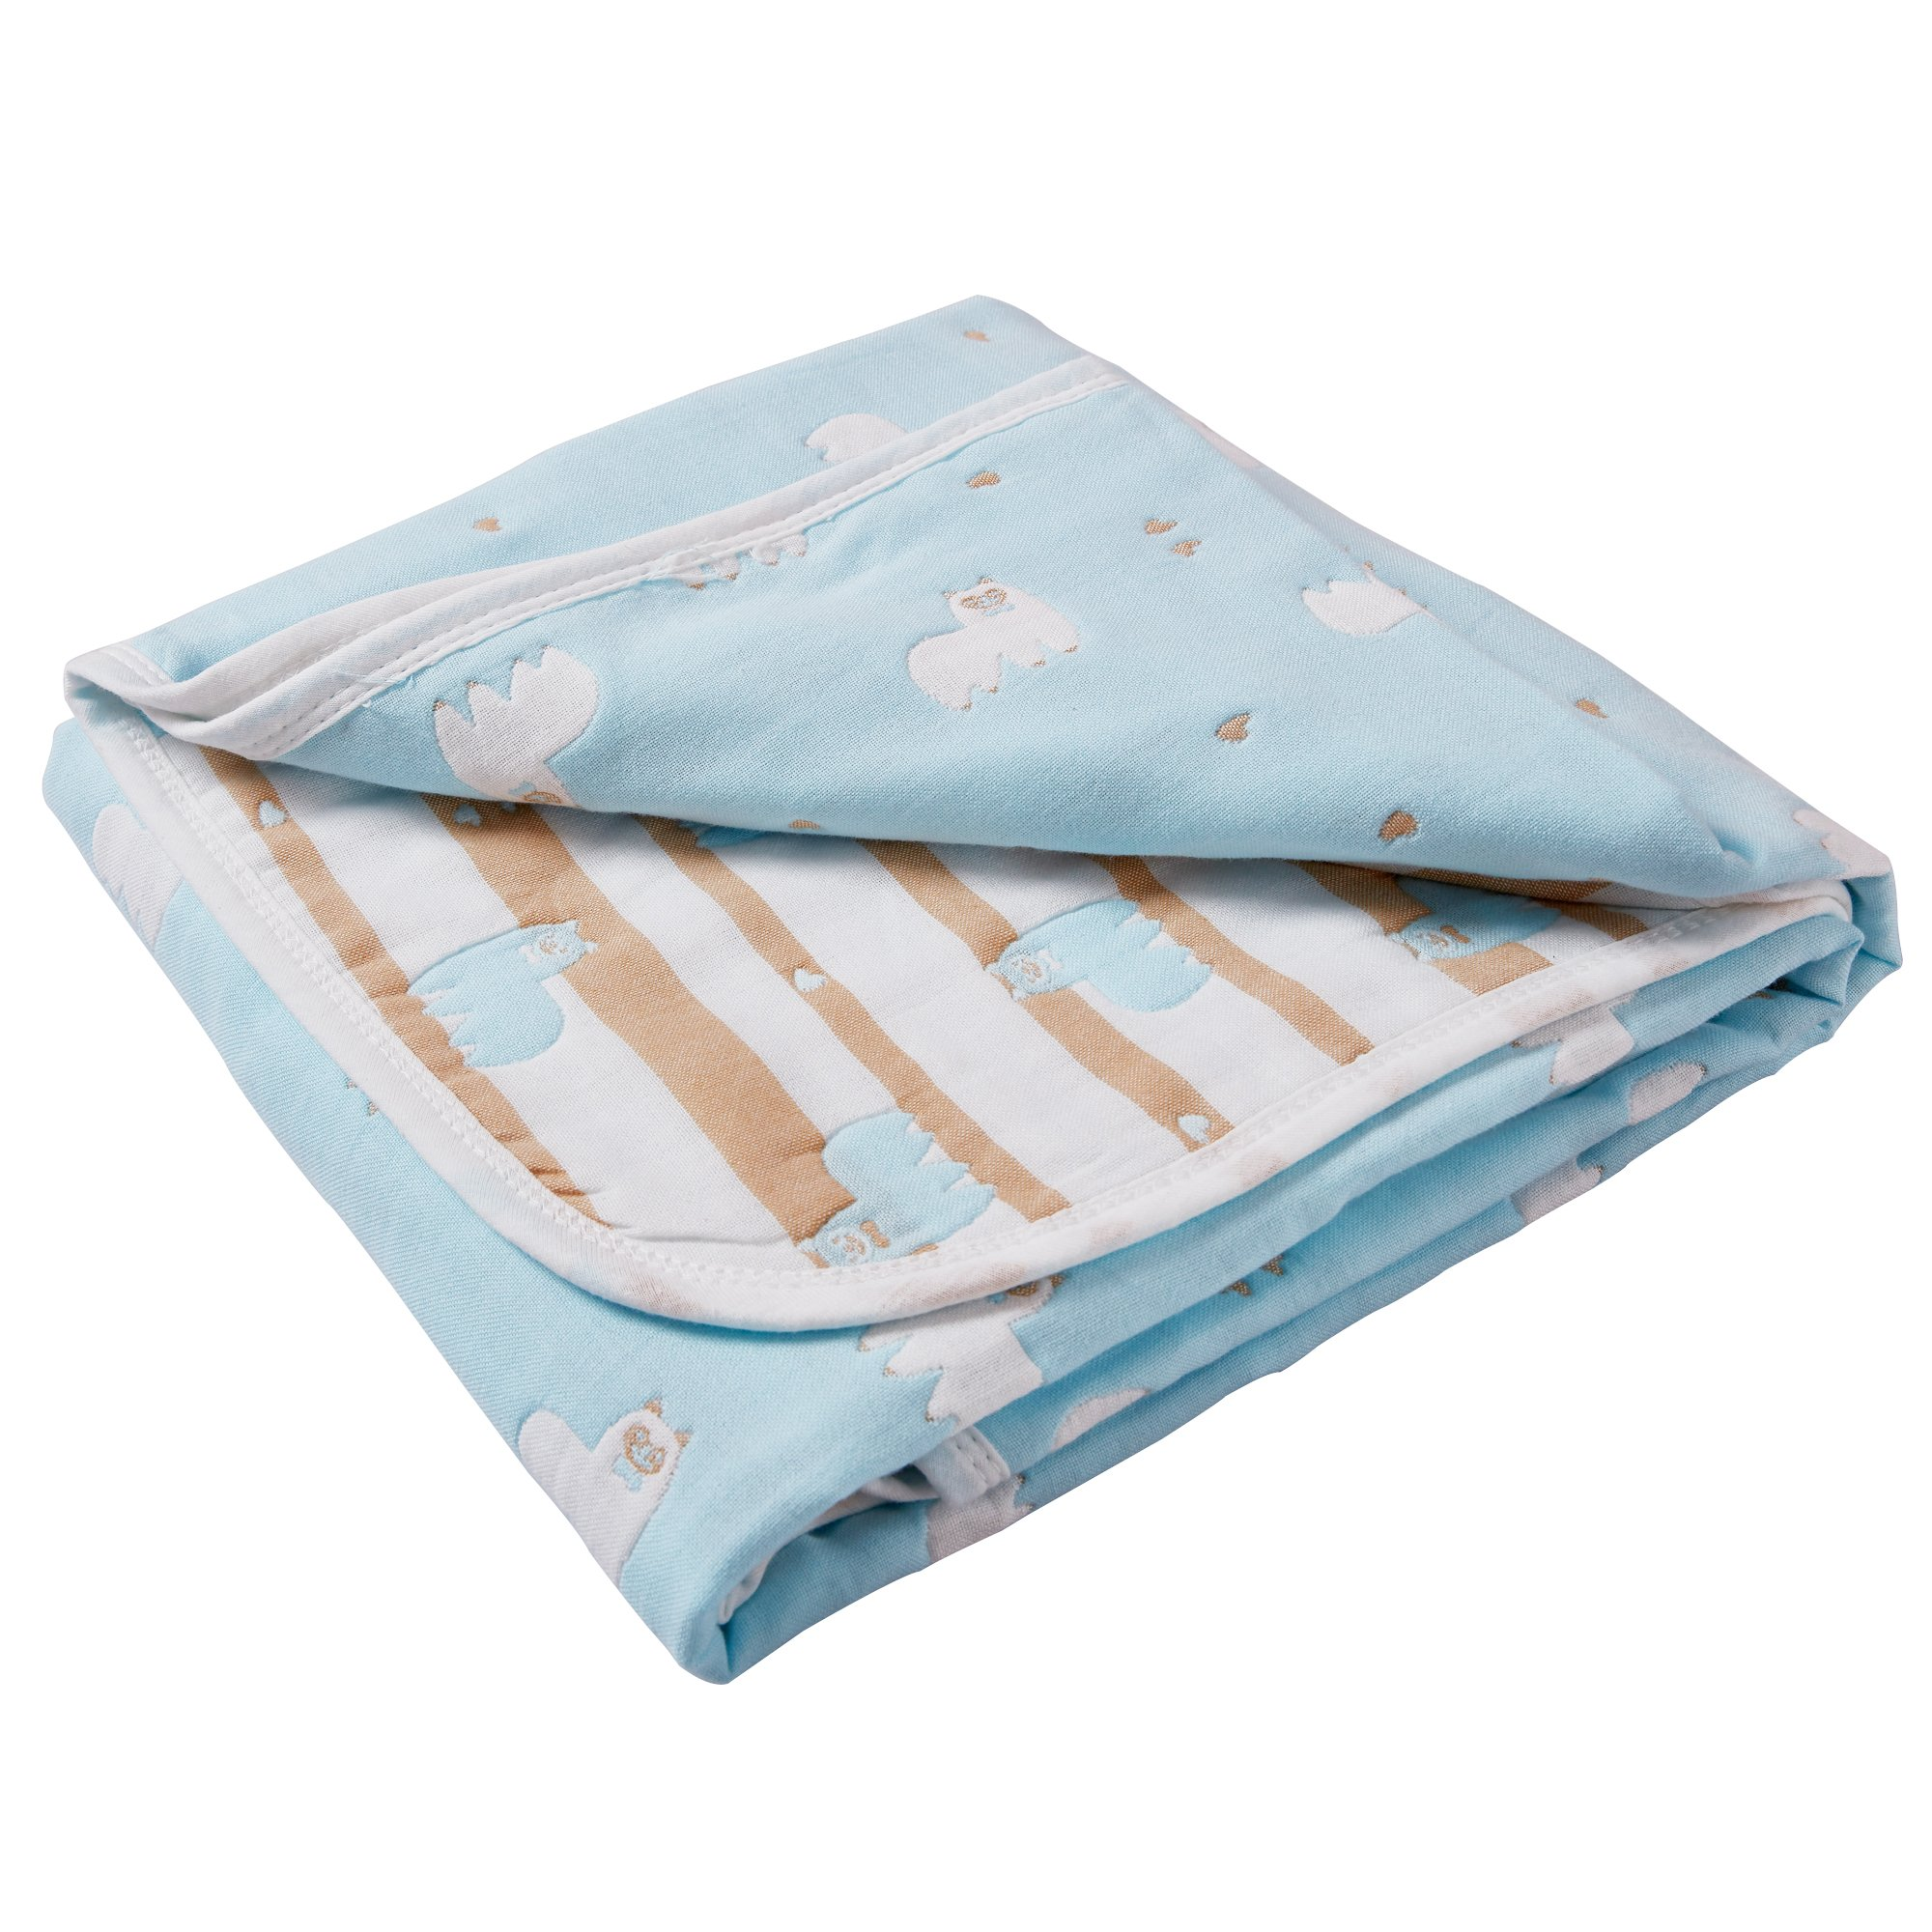 6 Layers of 100% Organic Muslin Cotton Toddler Blanket with Reversible Alpaca Printed Design, 43''x 43'', Blue by NTBAY